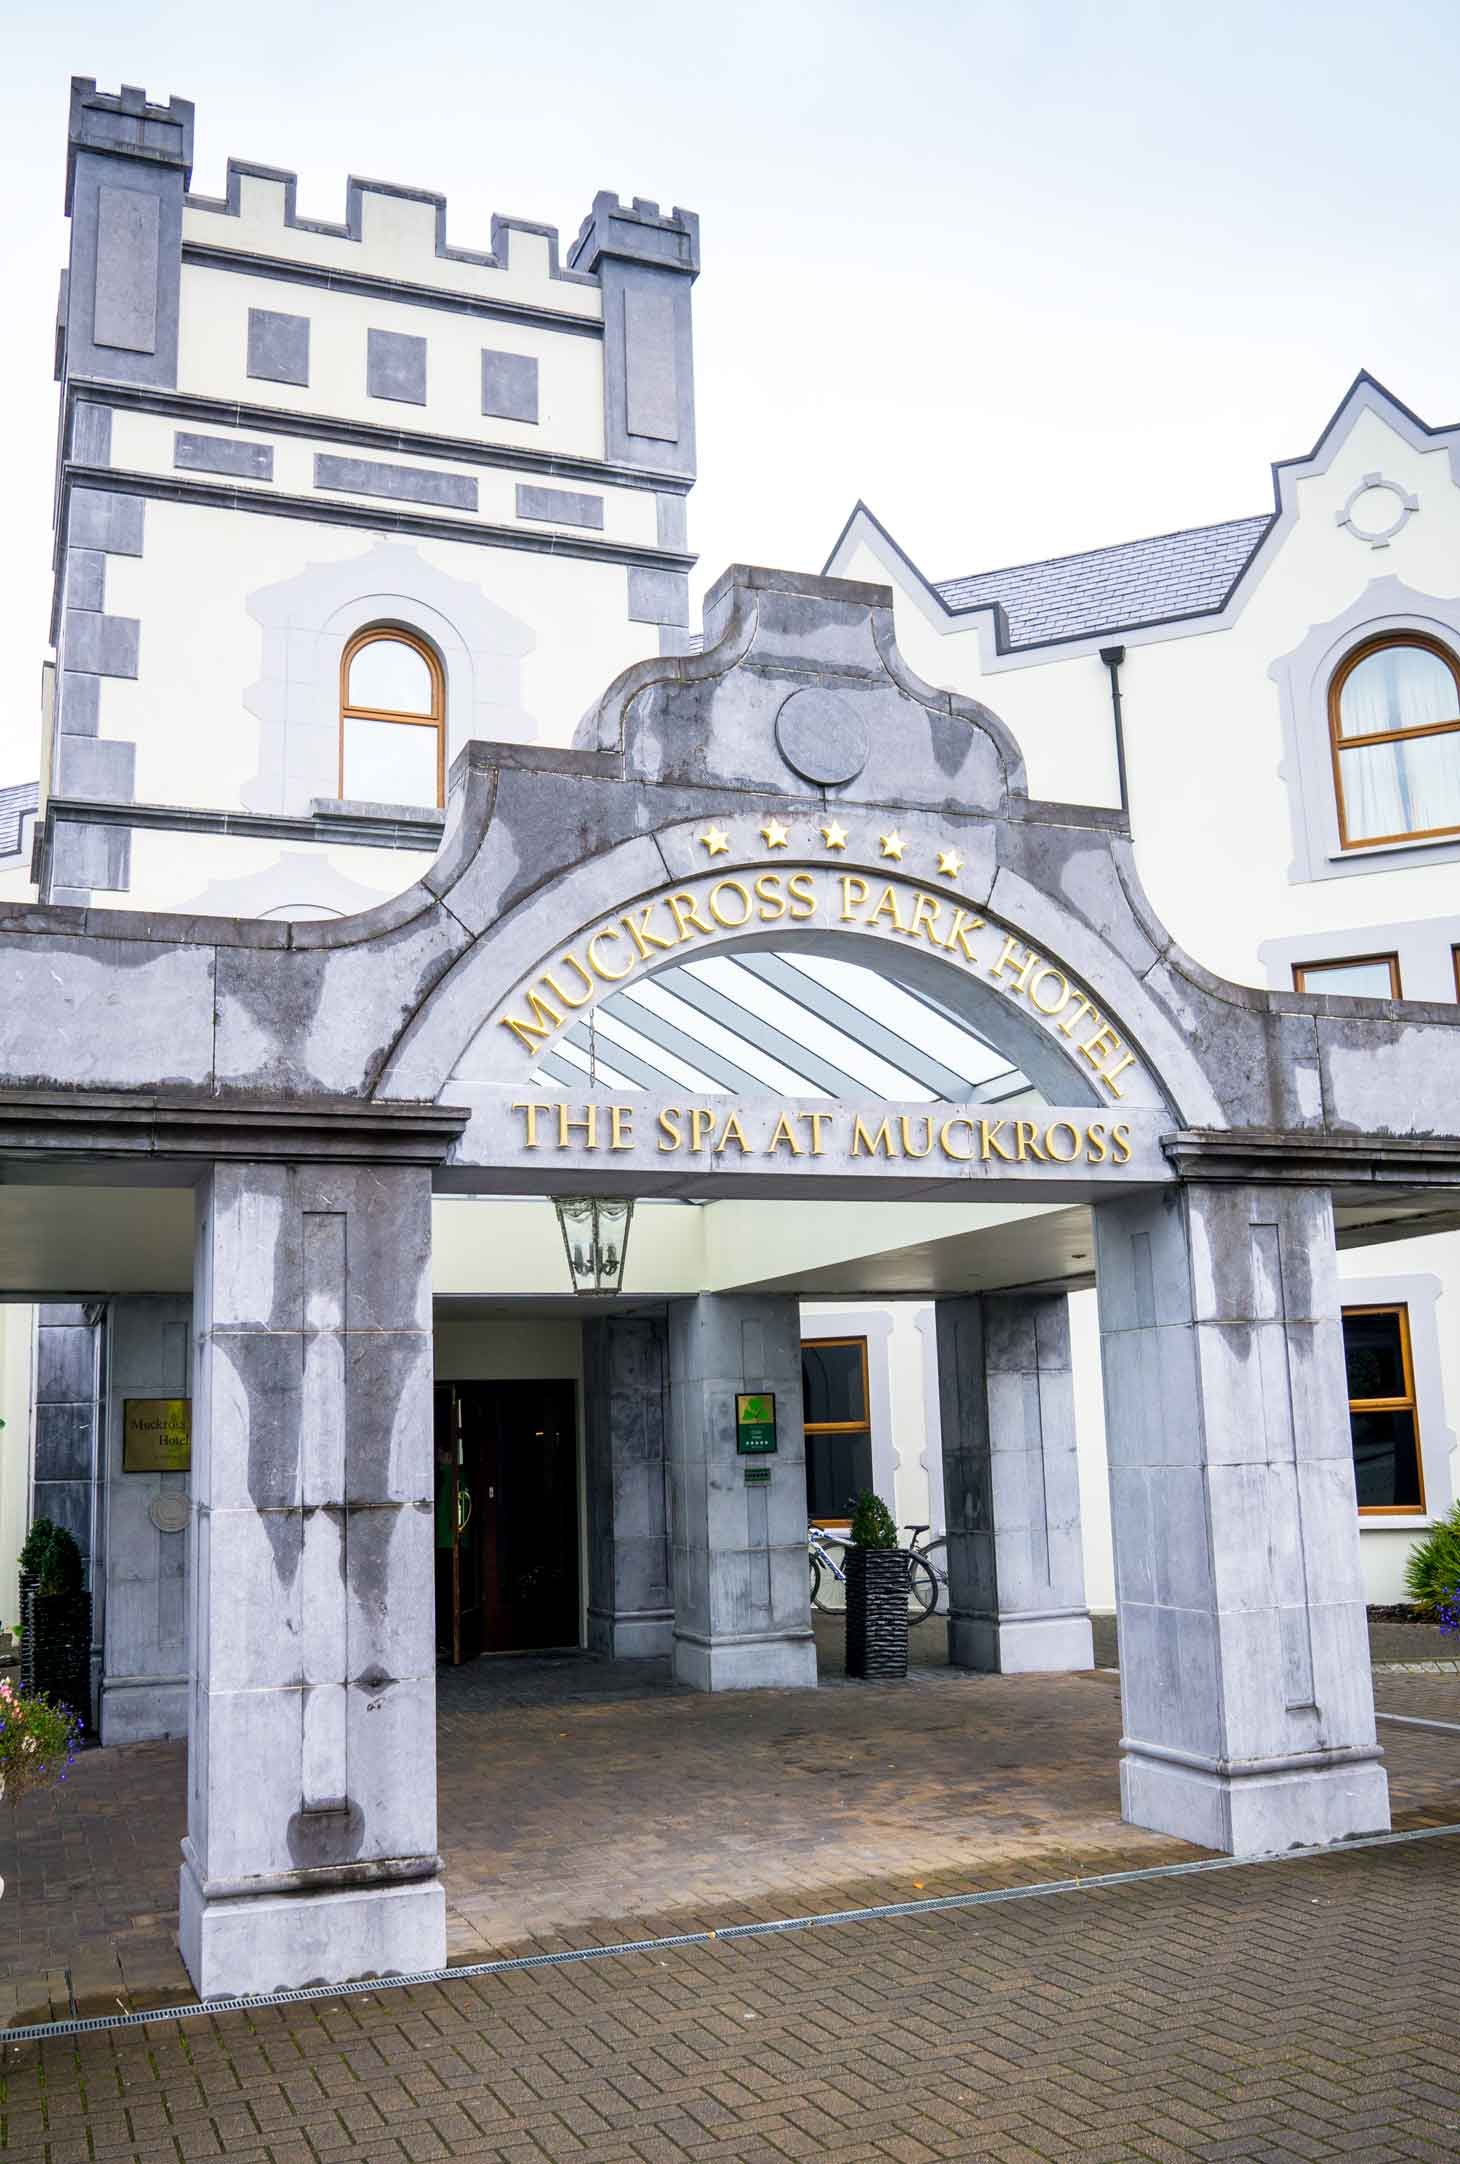 Muckross Park Hotel and Spa south of the town of Killarney outside the Lakes of Killarney